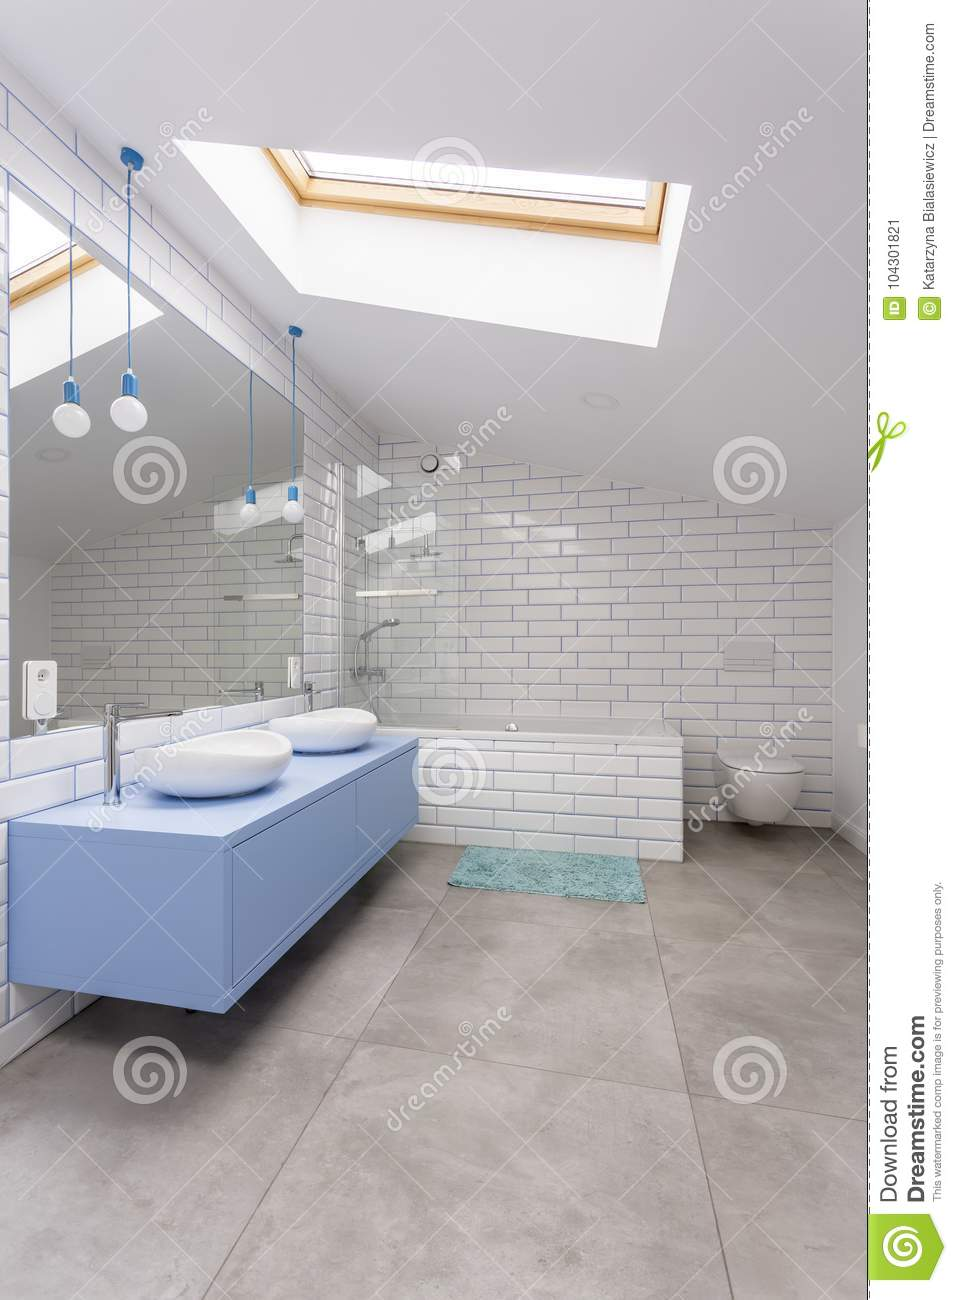 Blue Bathroom With Brick Wall Stock Image - Image of cabinet, open ...